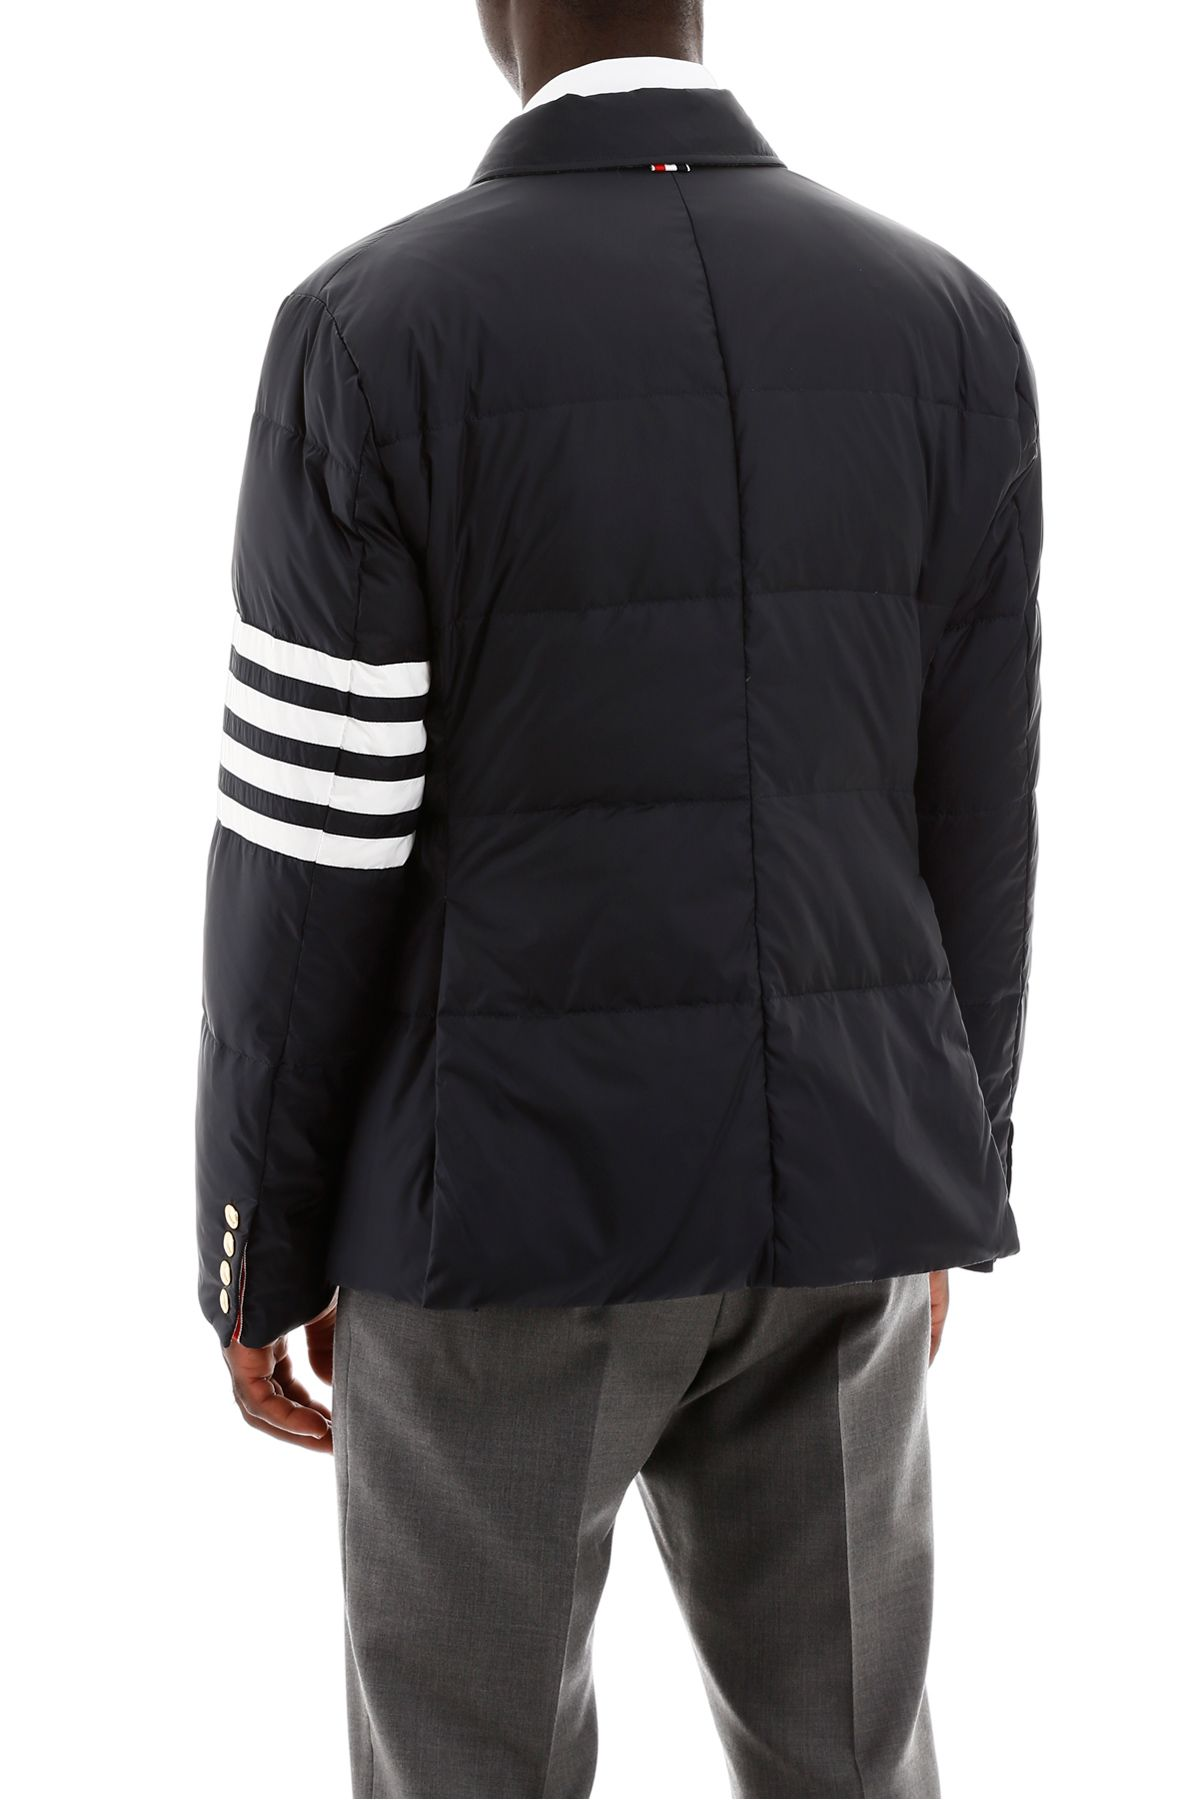 thom browne clothing men quilted blazer